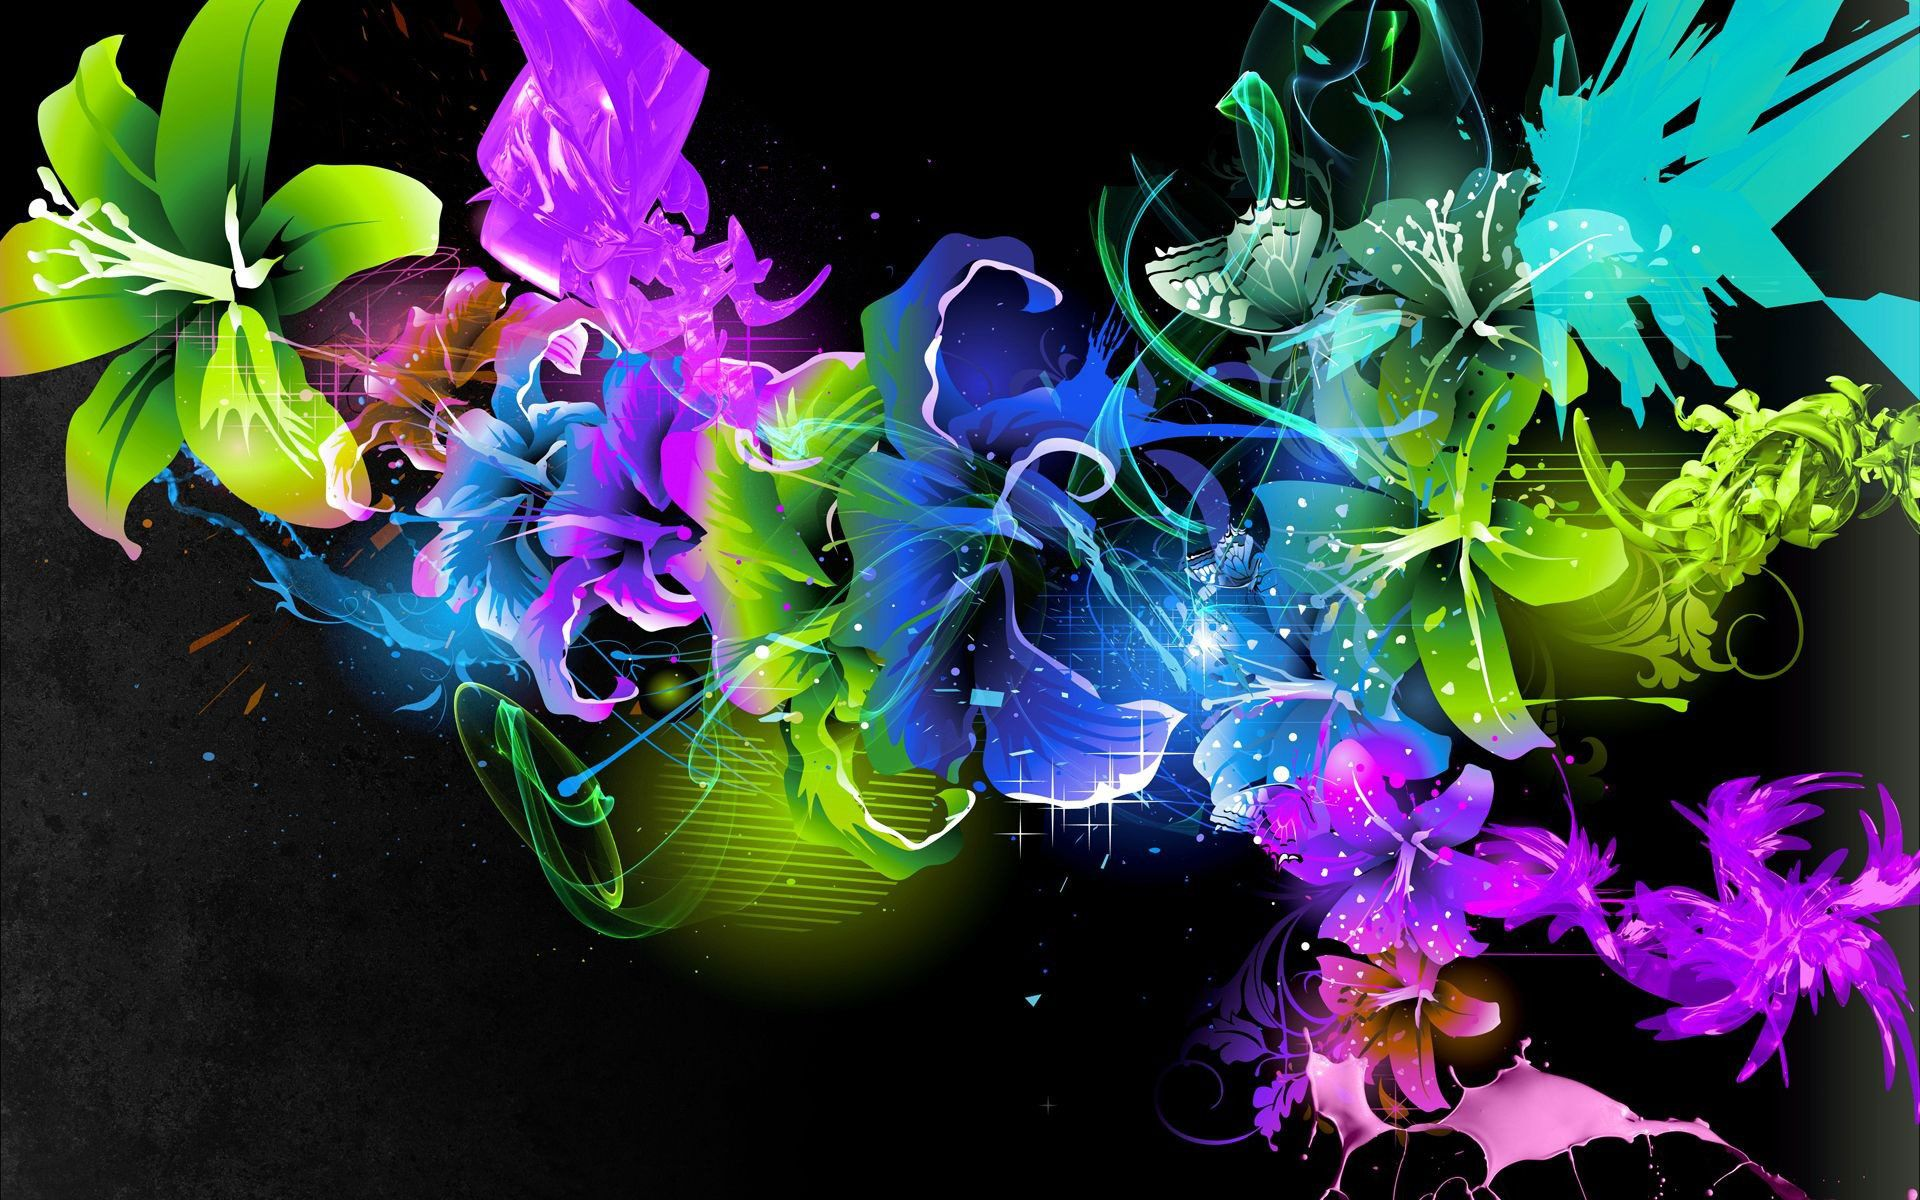 Put An Abstract Wallpaper On Your Desktop Background 123 Images Flower Desktop Wallpaper Abstract Wallpaper Abstract